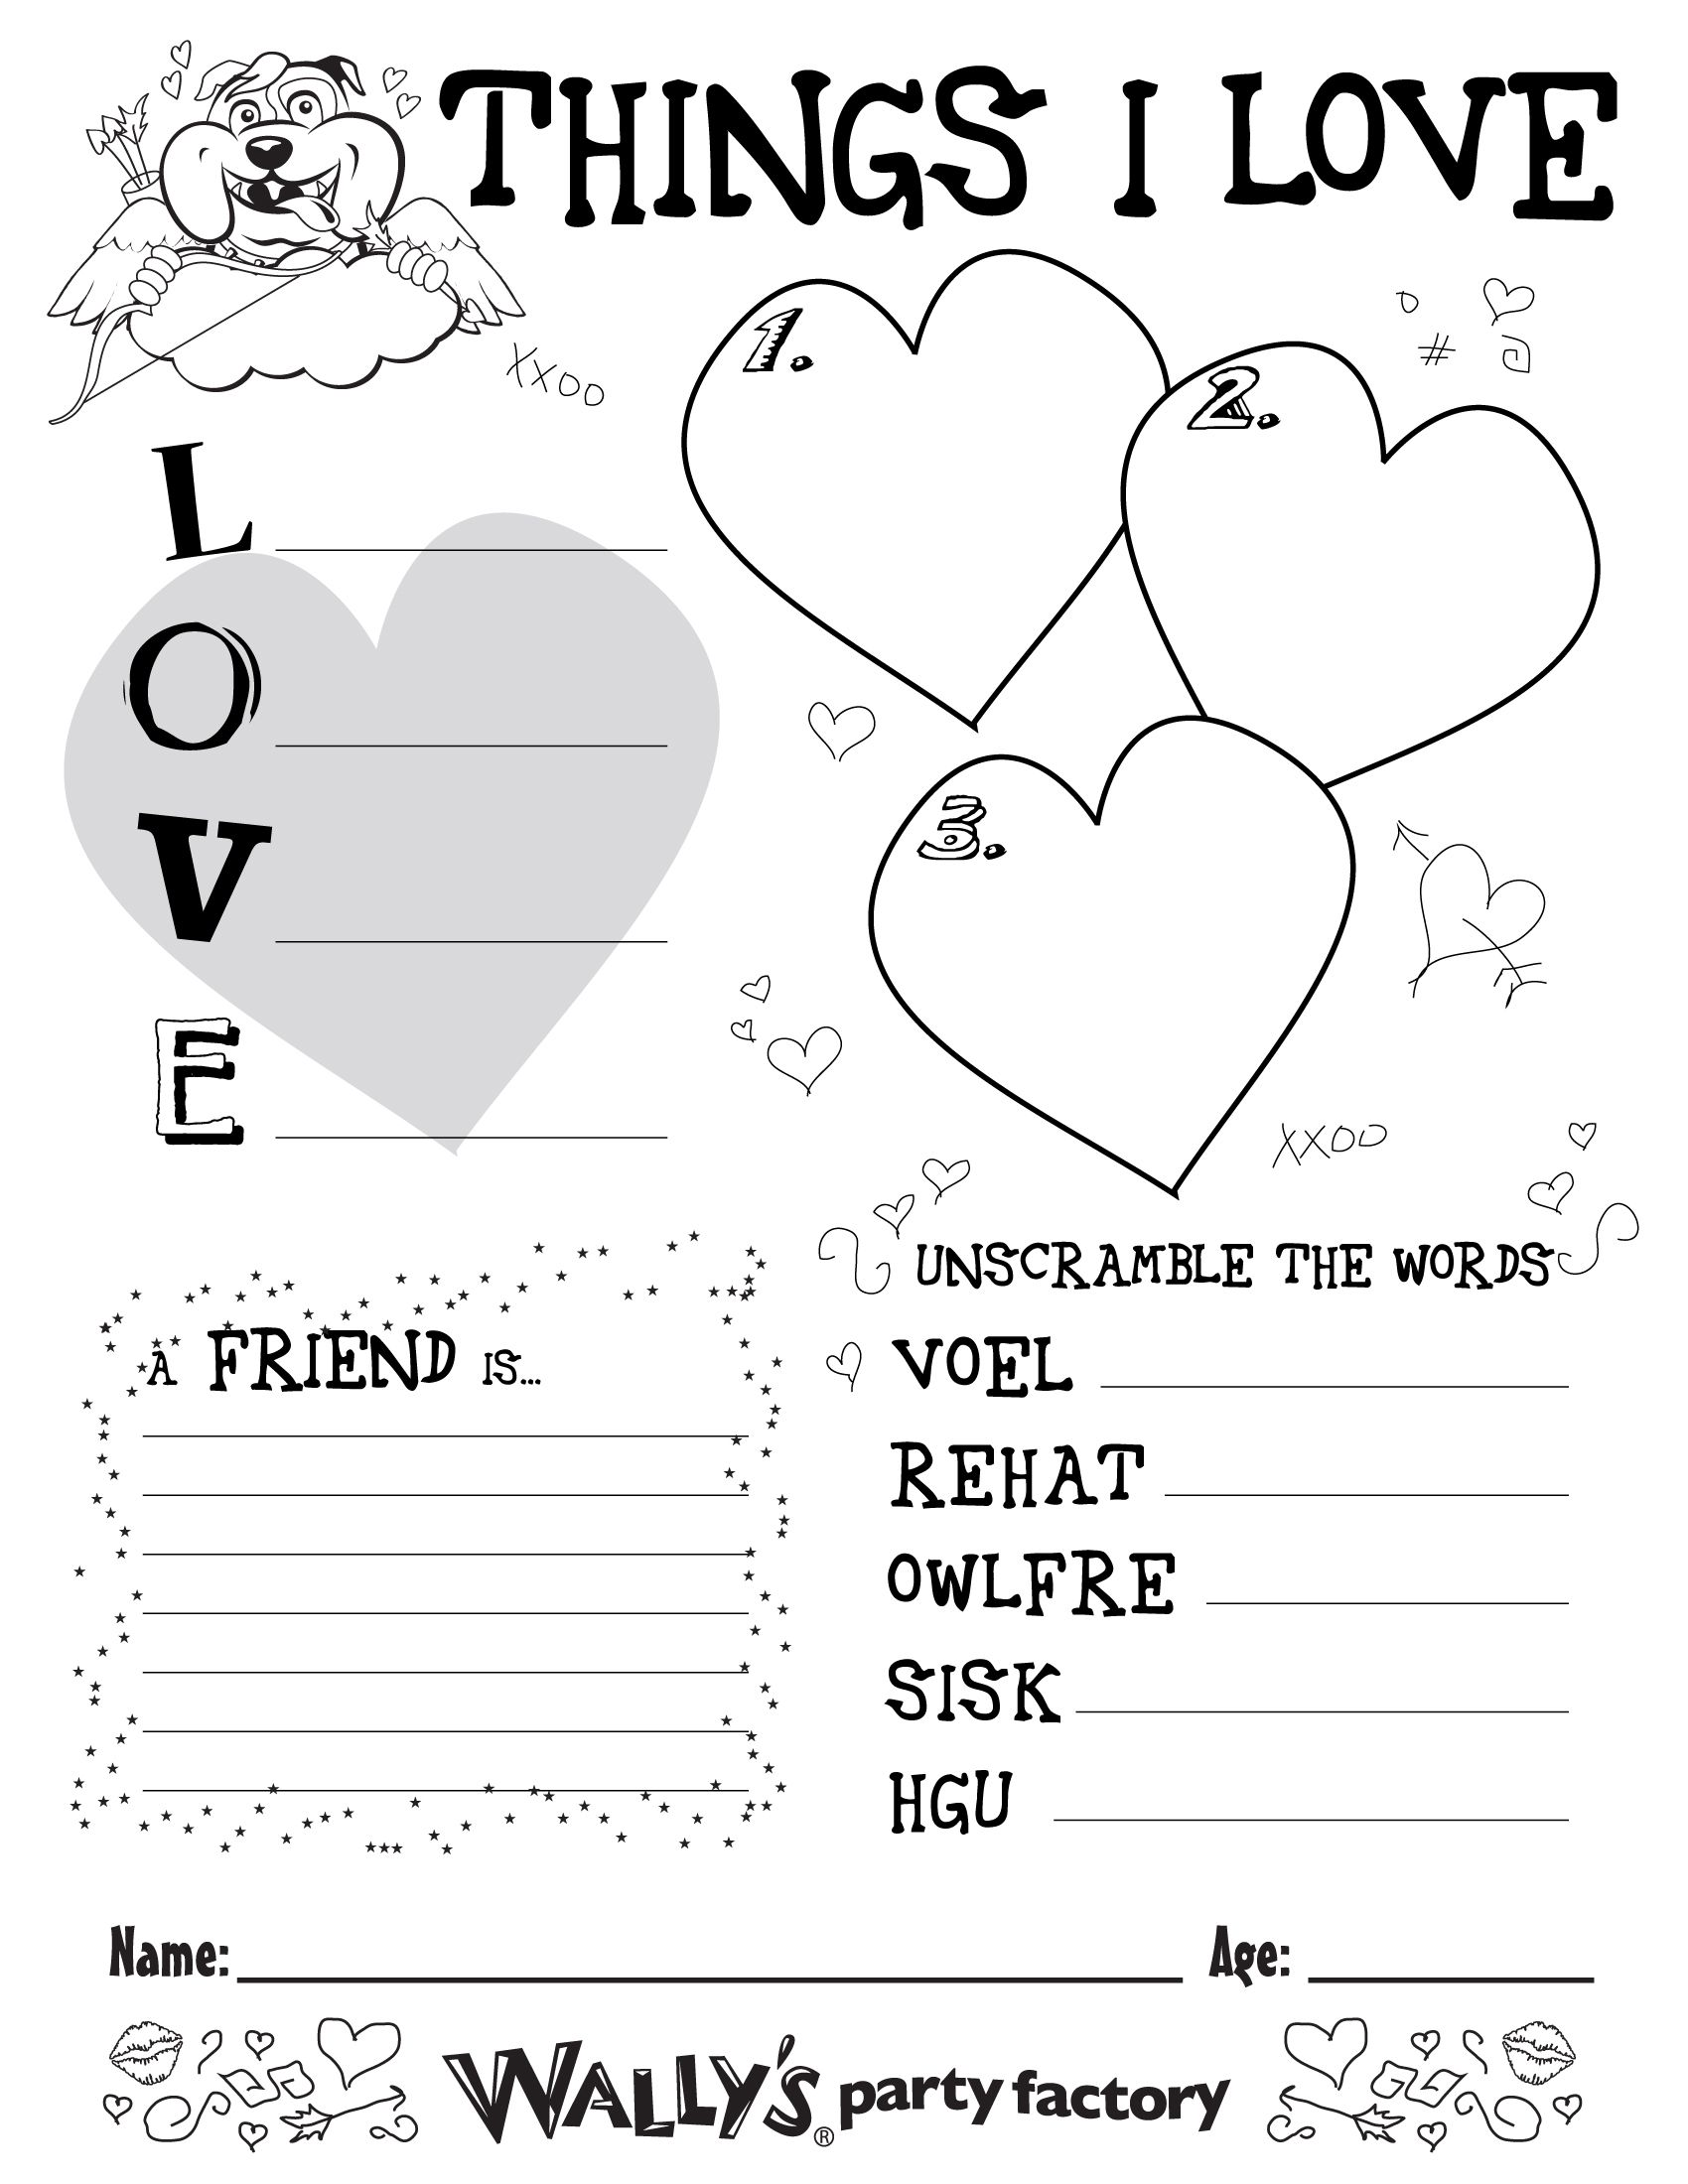 Baking Supplies Worksheet Printable